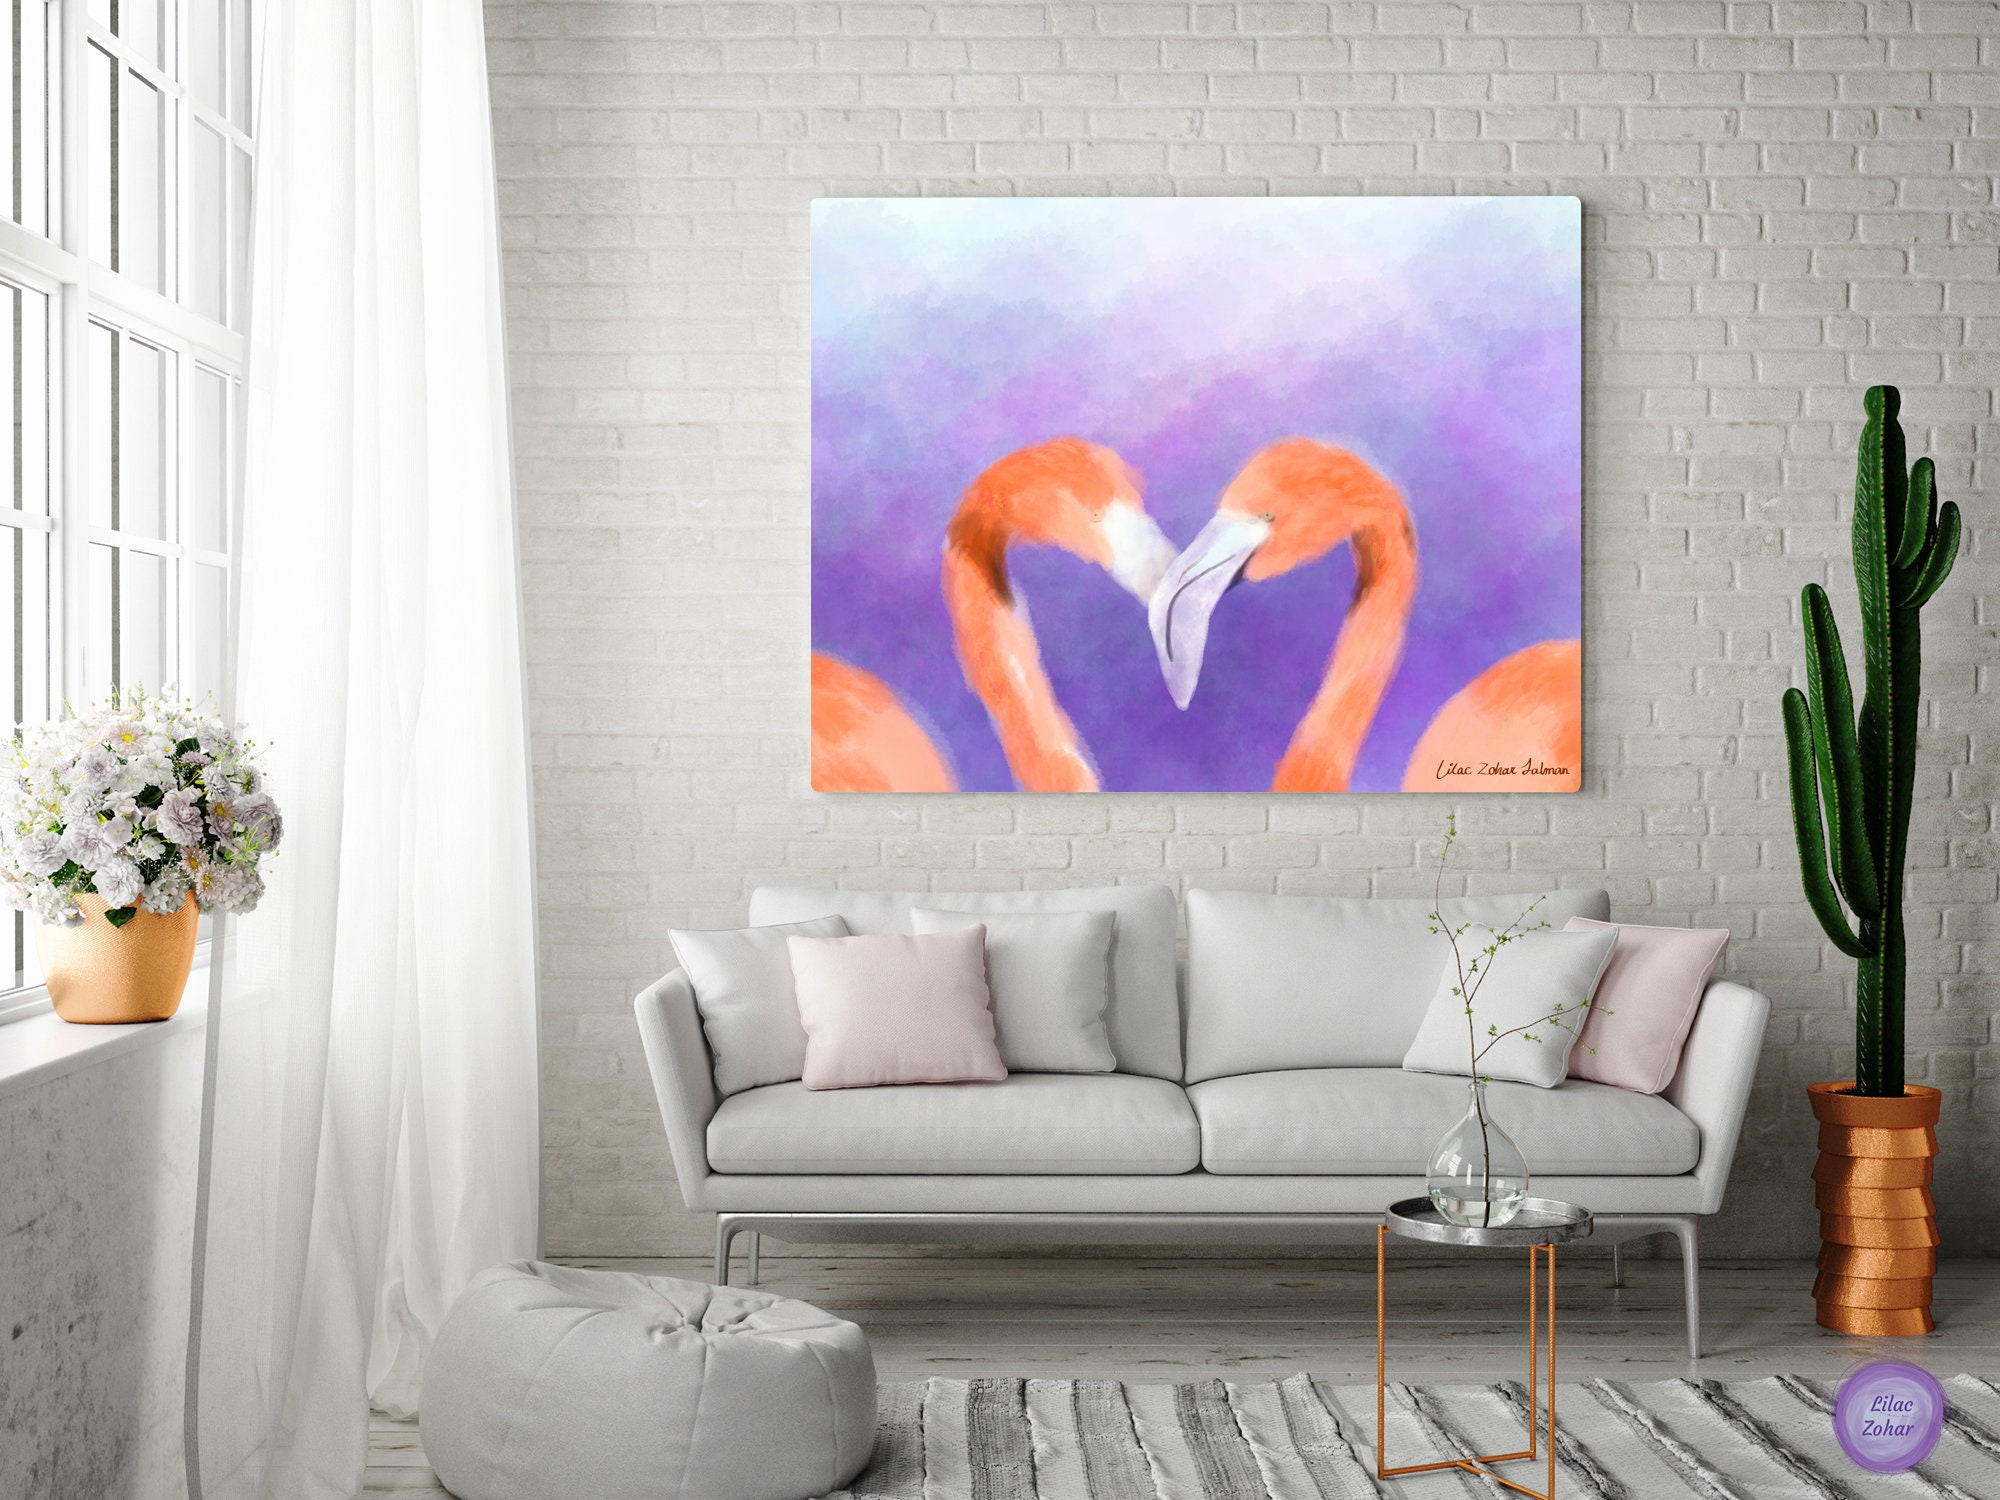 Wall painting for bedroom, Flamingo canvas art, Watercolor Bird Painting,  Bedroom wall art canvas, Wall paintings for living room, Canvas